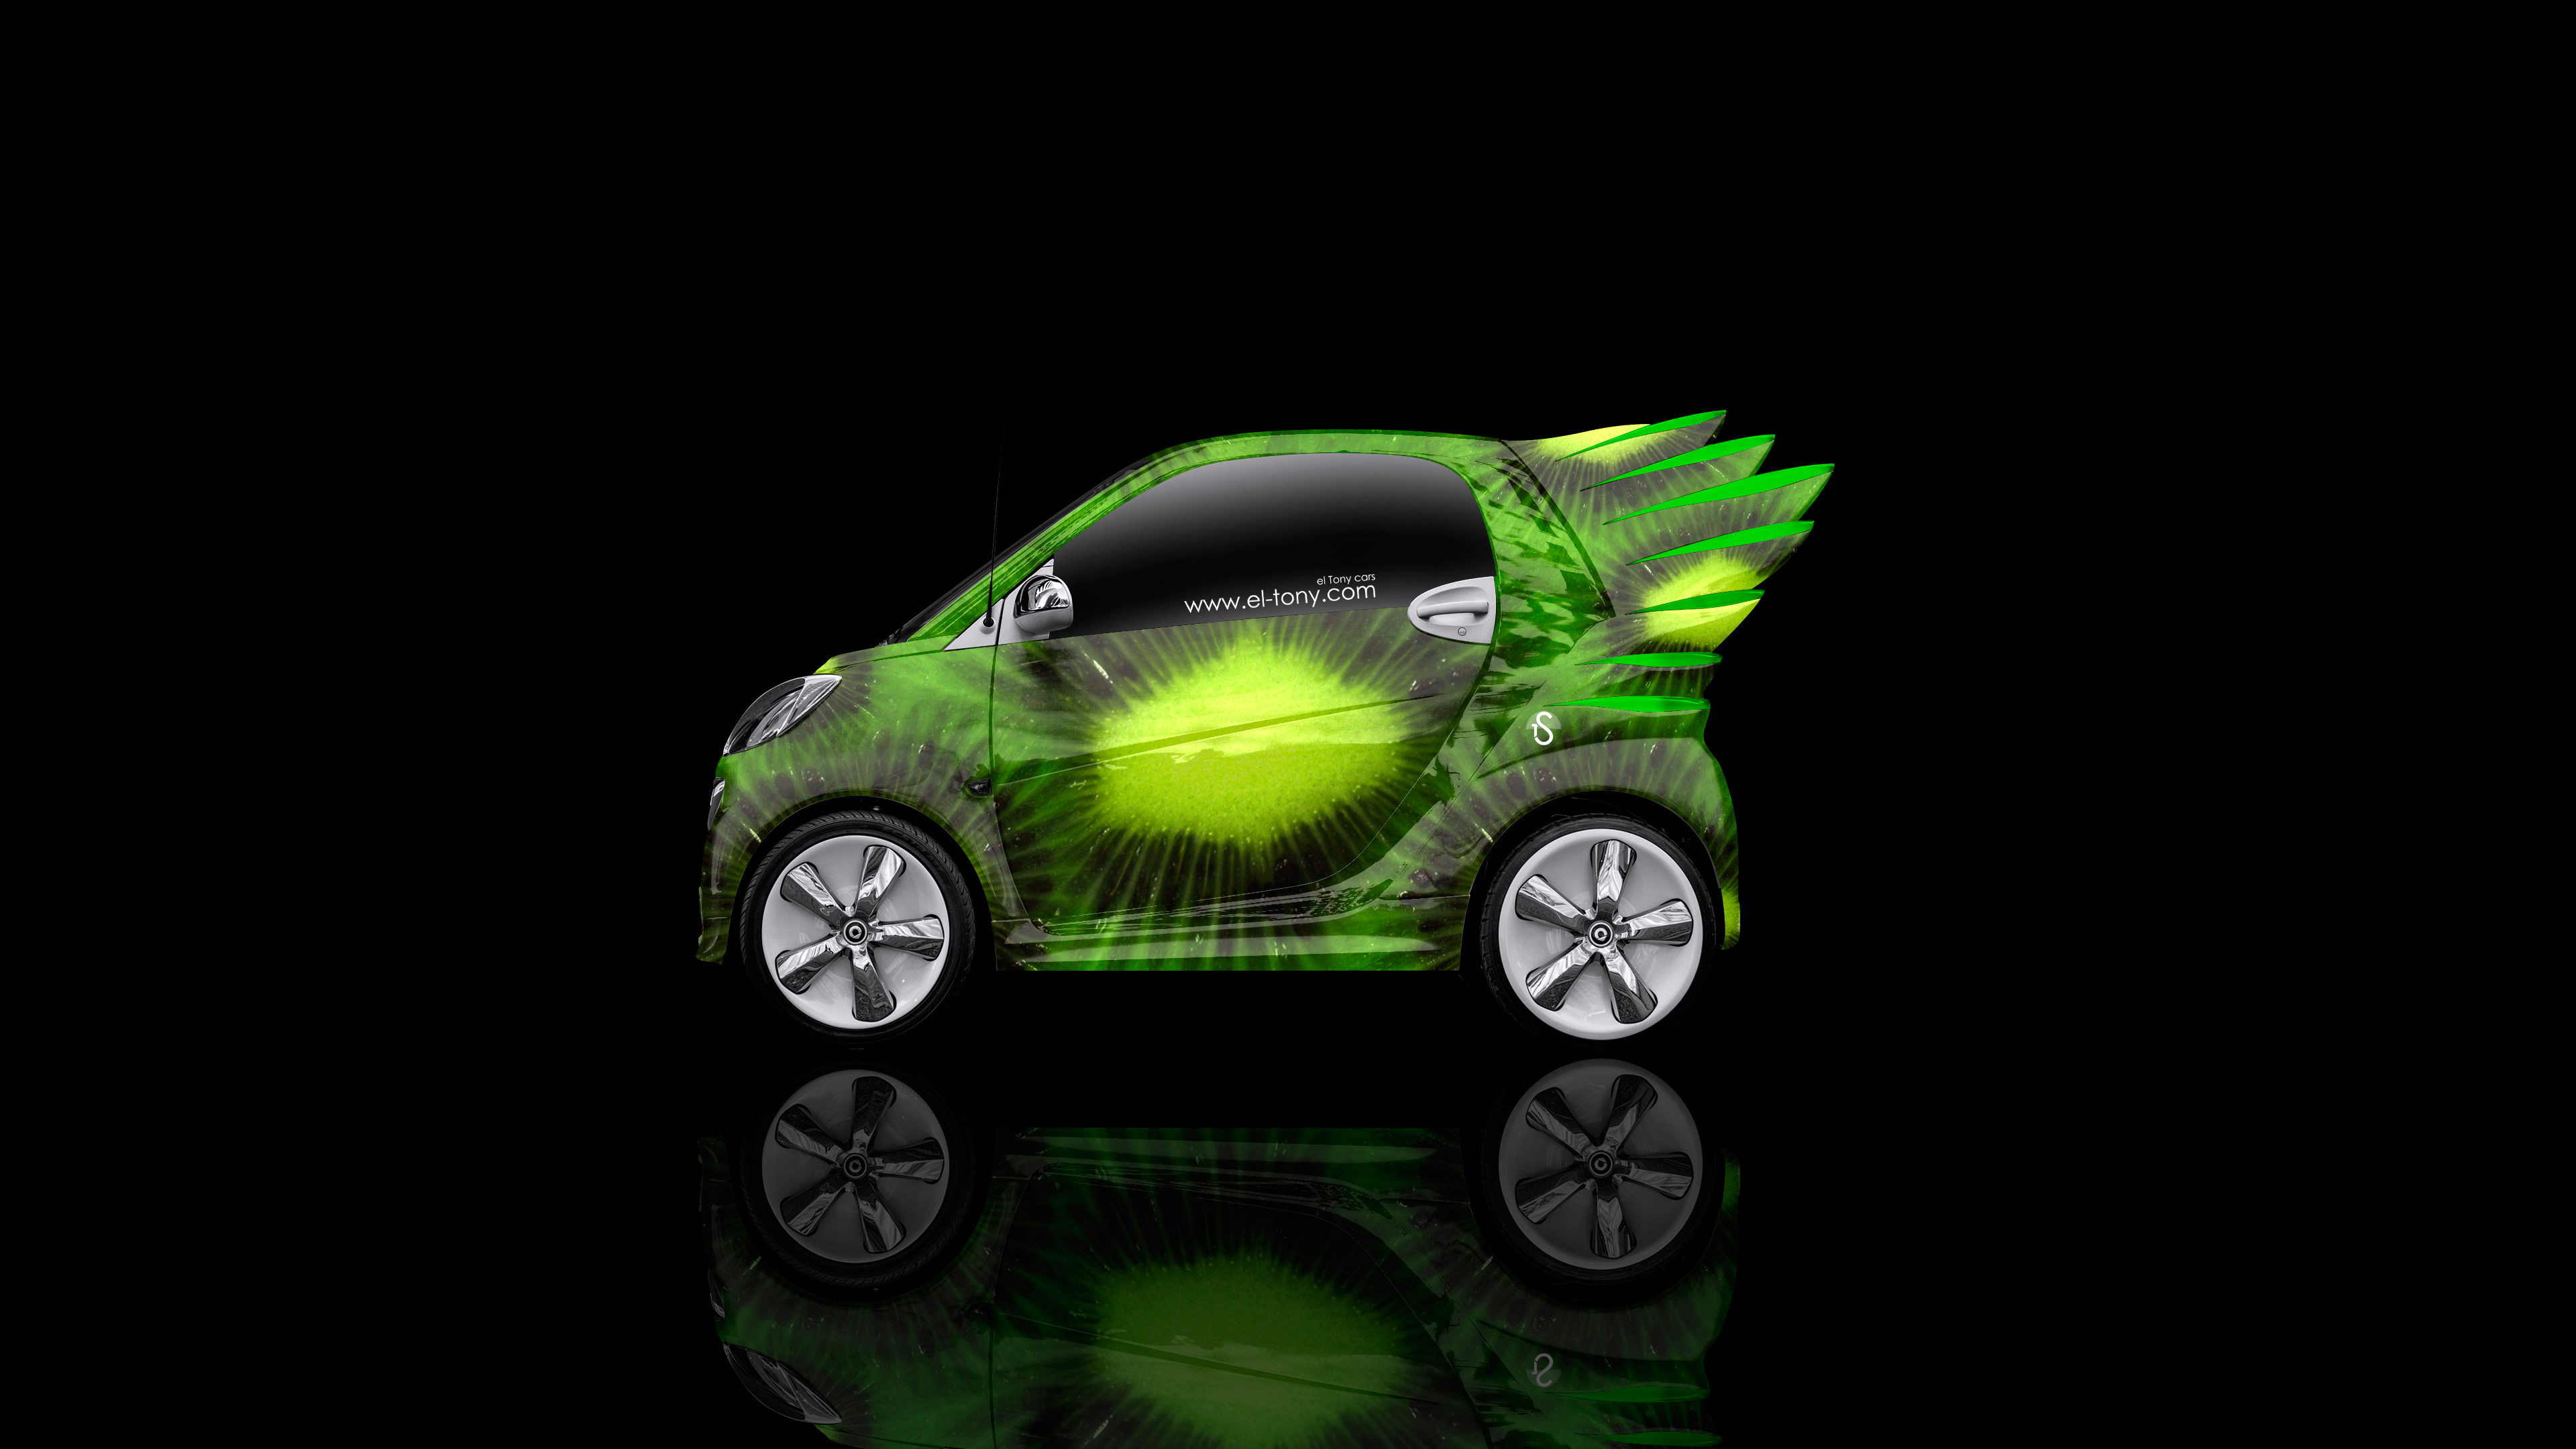 Attrayant Smart Electro Kiwi Aerography Car 2014 Green Colors